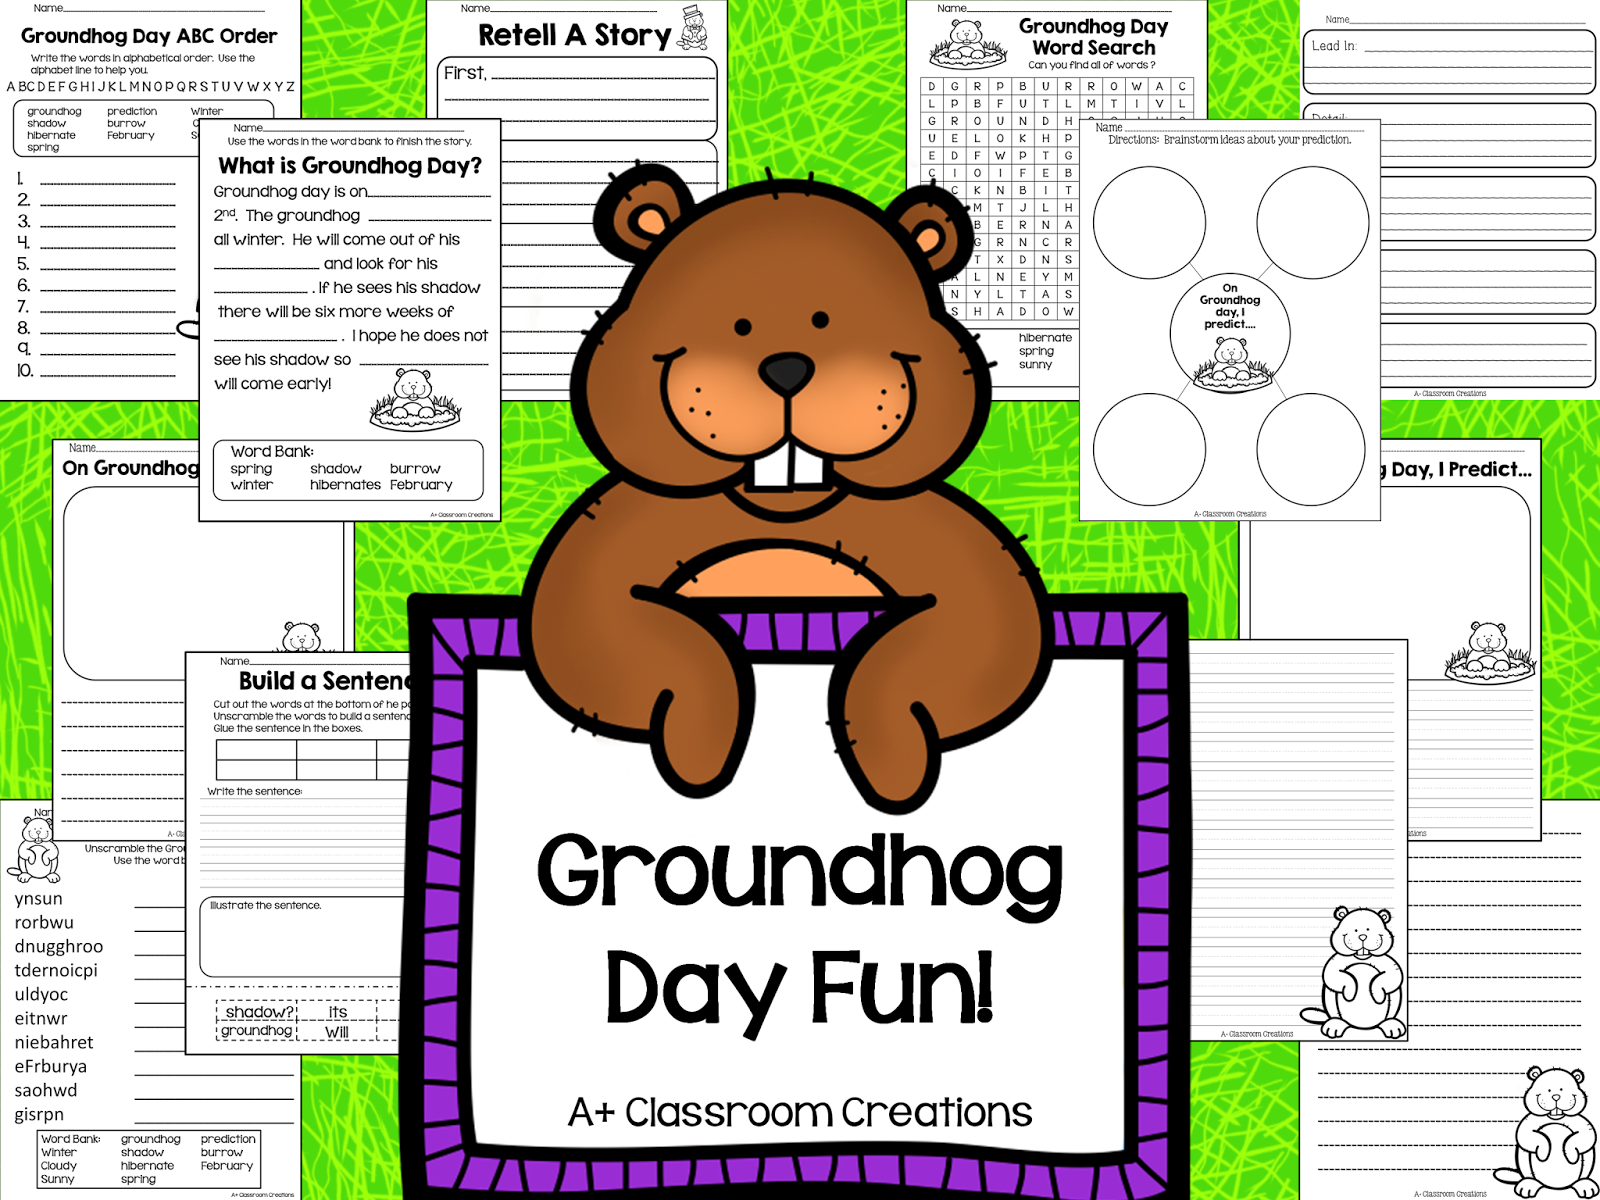 http://www.teacherspayteachers.com/Product/Groundhog-Day-Fun-1074171